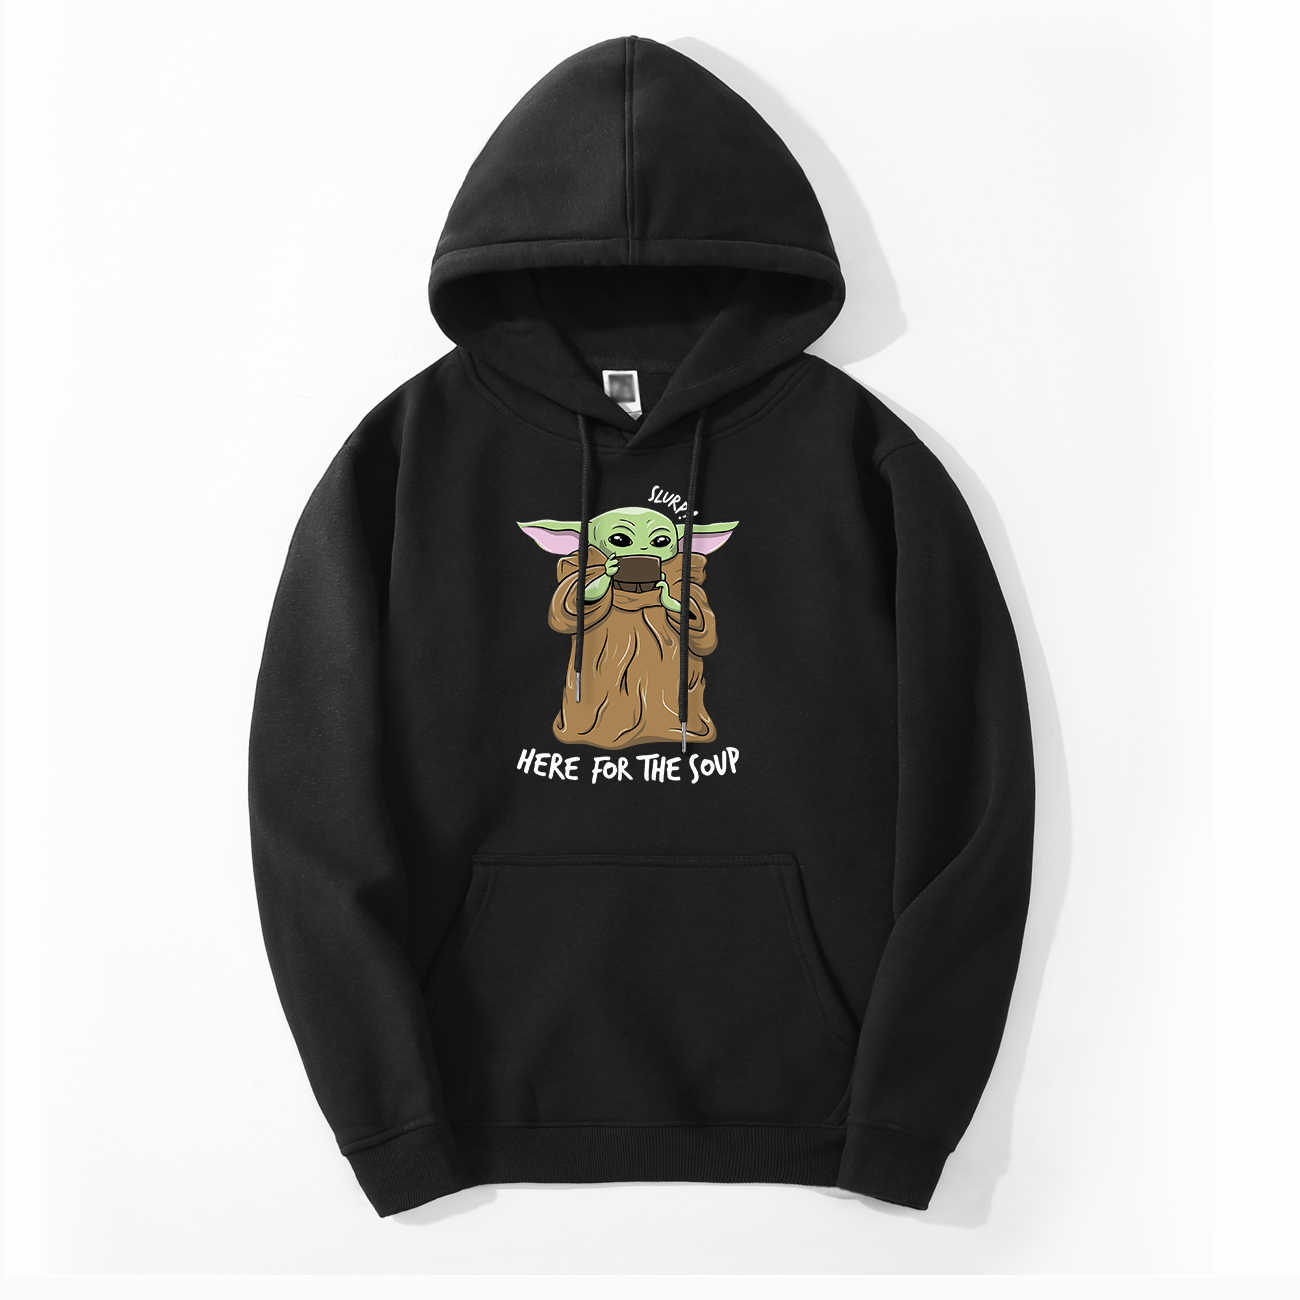 Leuke Baby Yoda Hoodie Sweatshirts Fleece De Mandalorian Mannen Hoodies Herfst Winter Hooded Star War Streetwear Mode Sportkleding